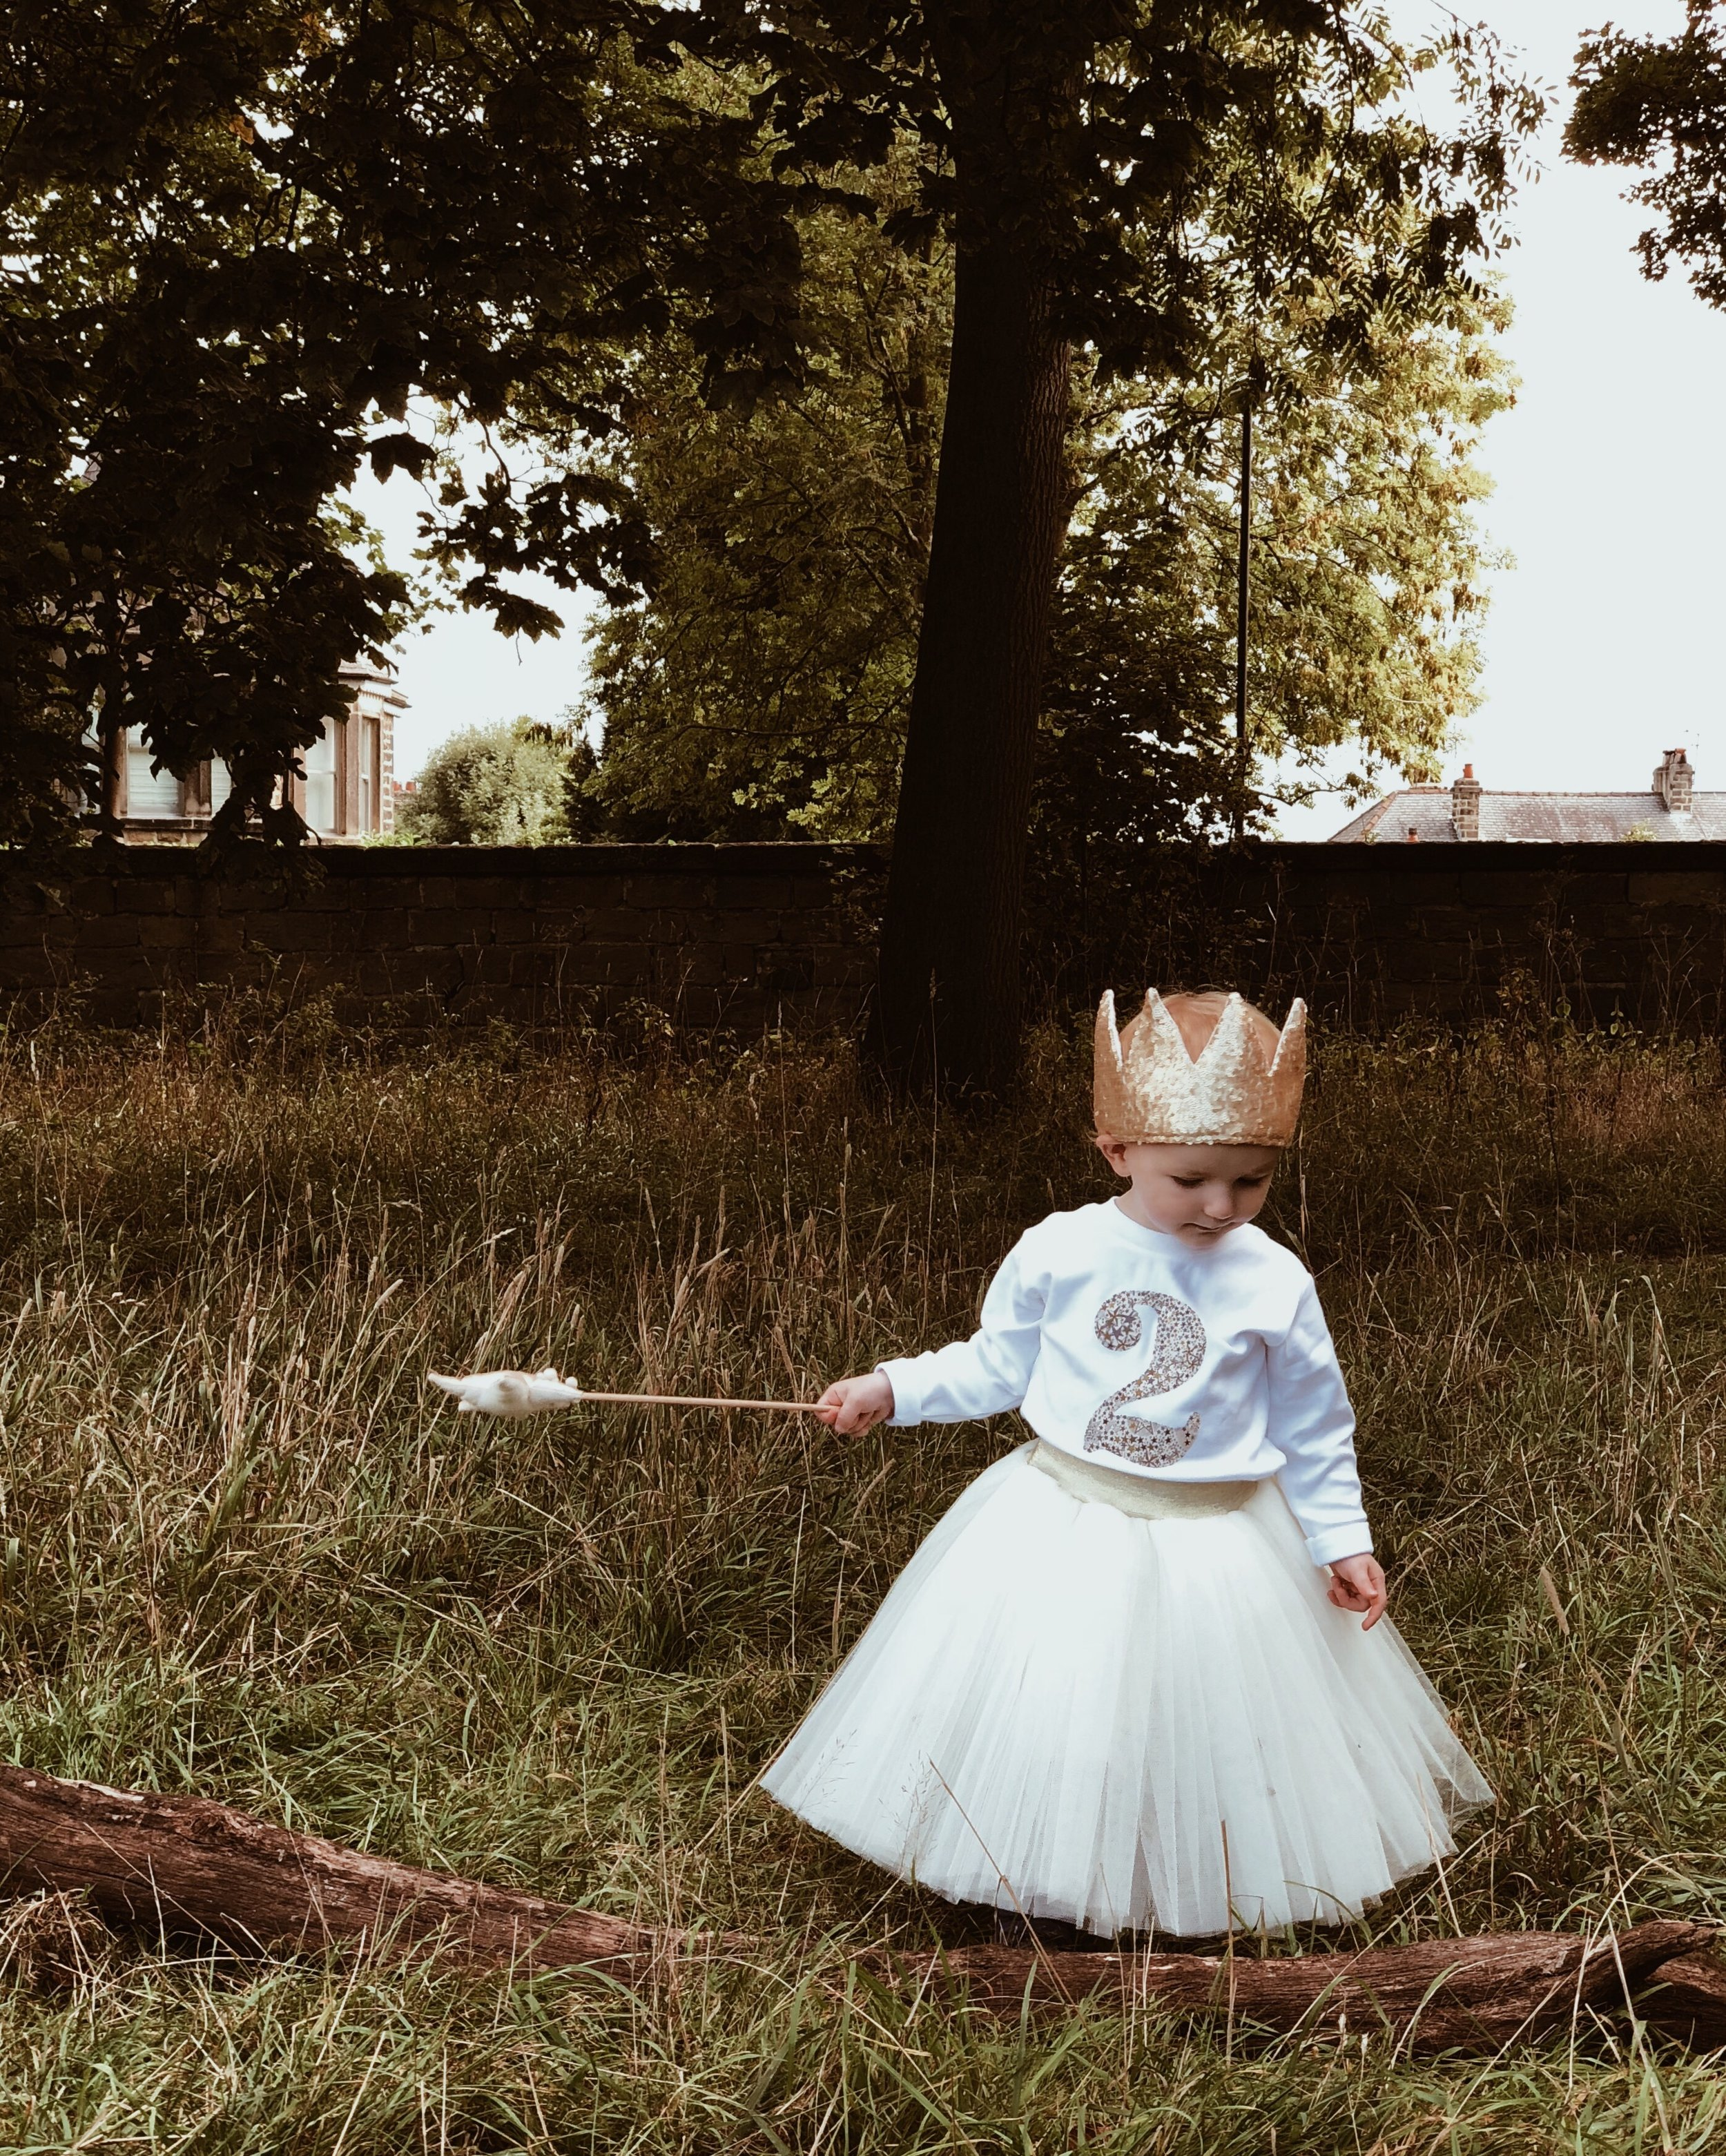 Willa's beautiful birthday outfit comes from Magnificent Stanley and Fable Heart.